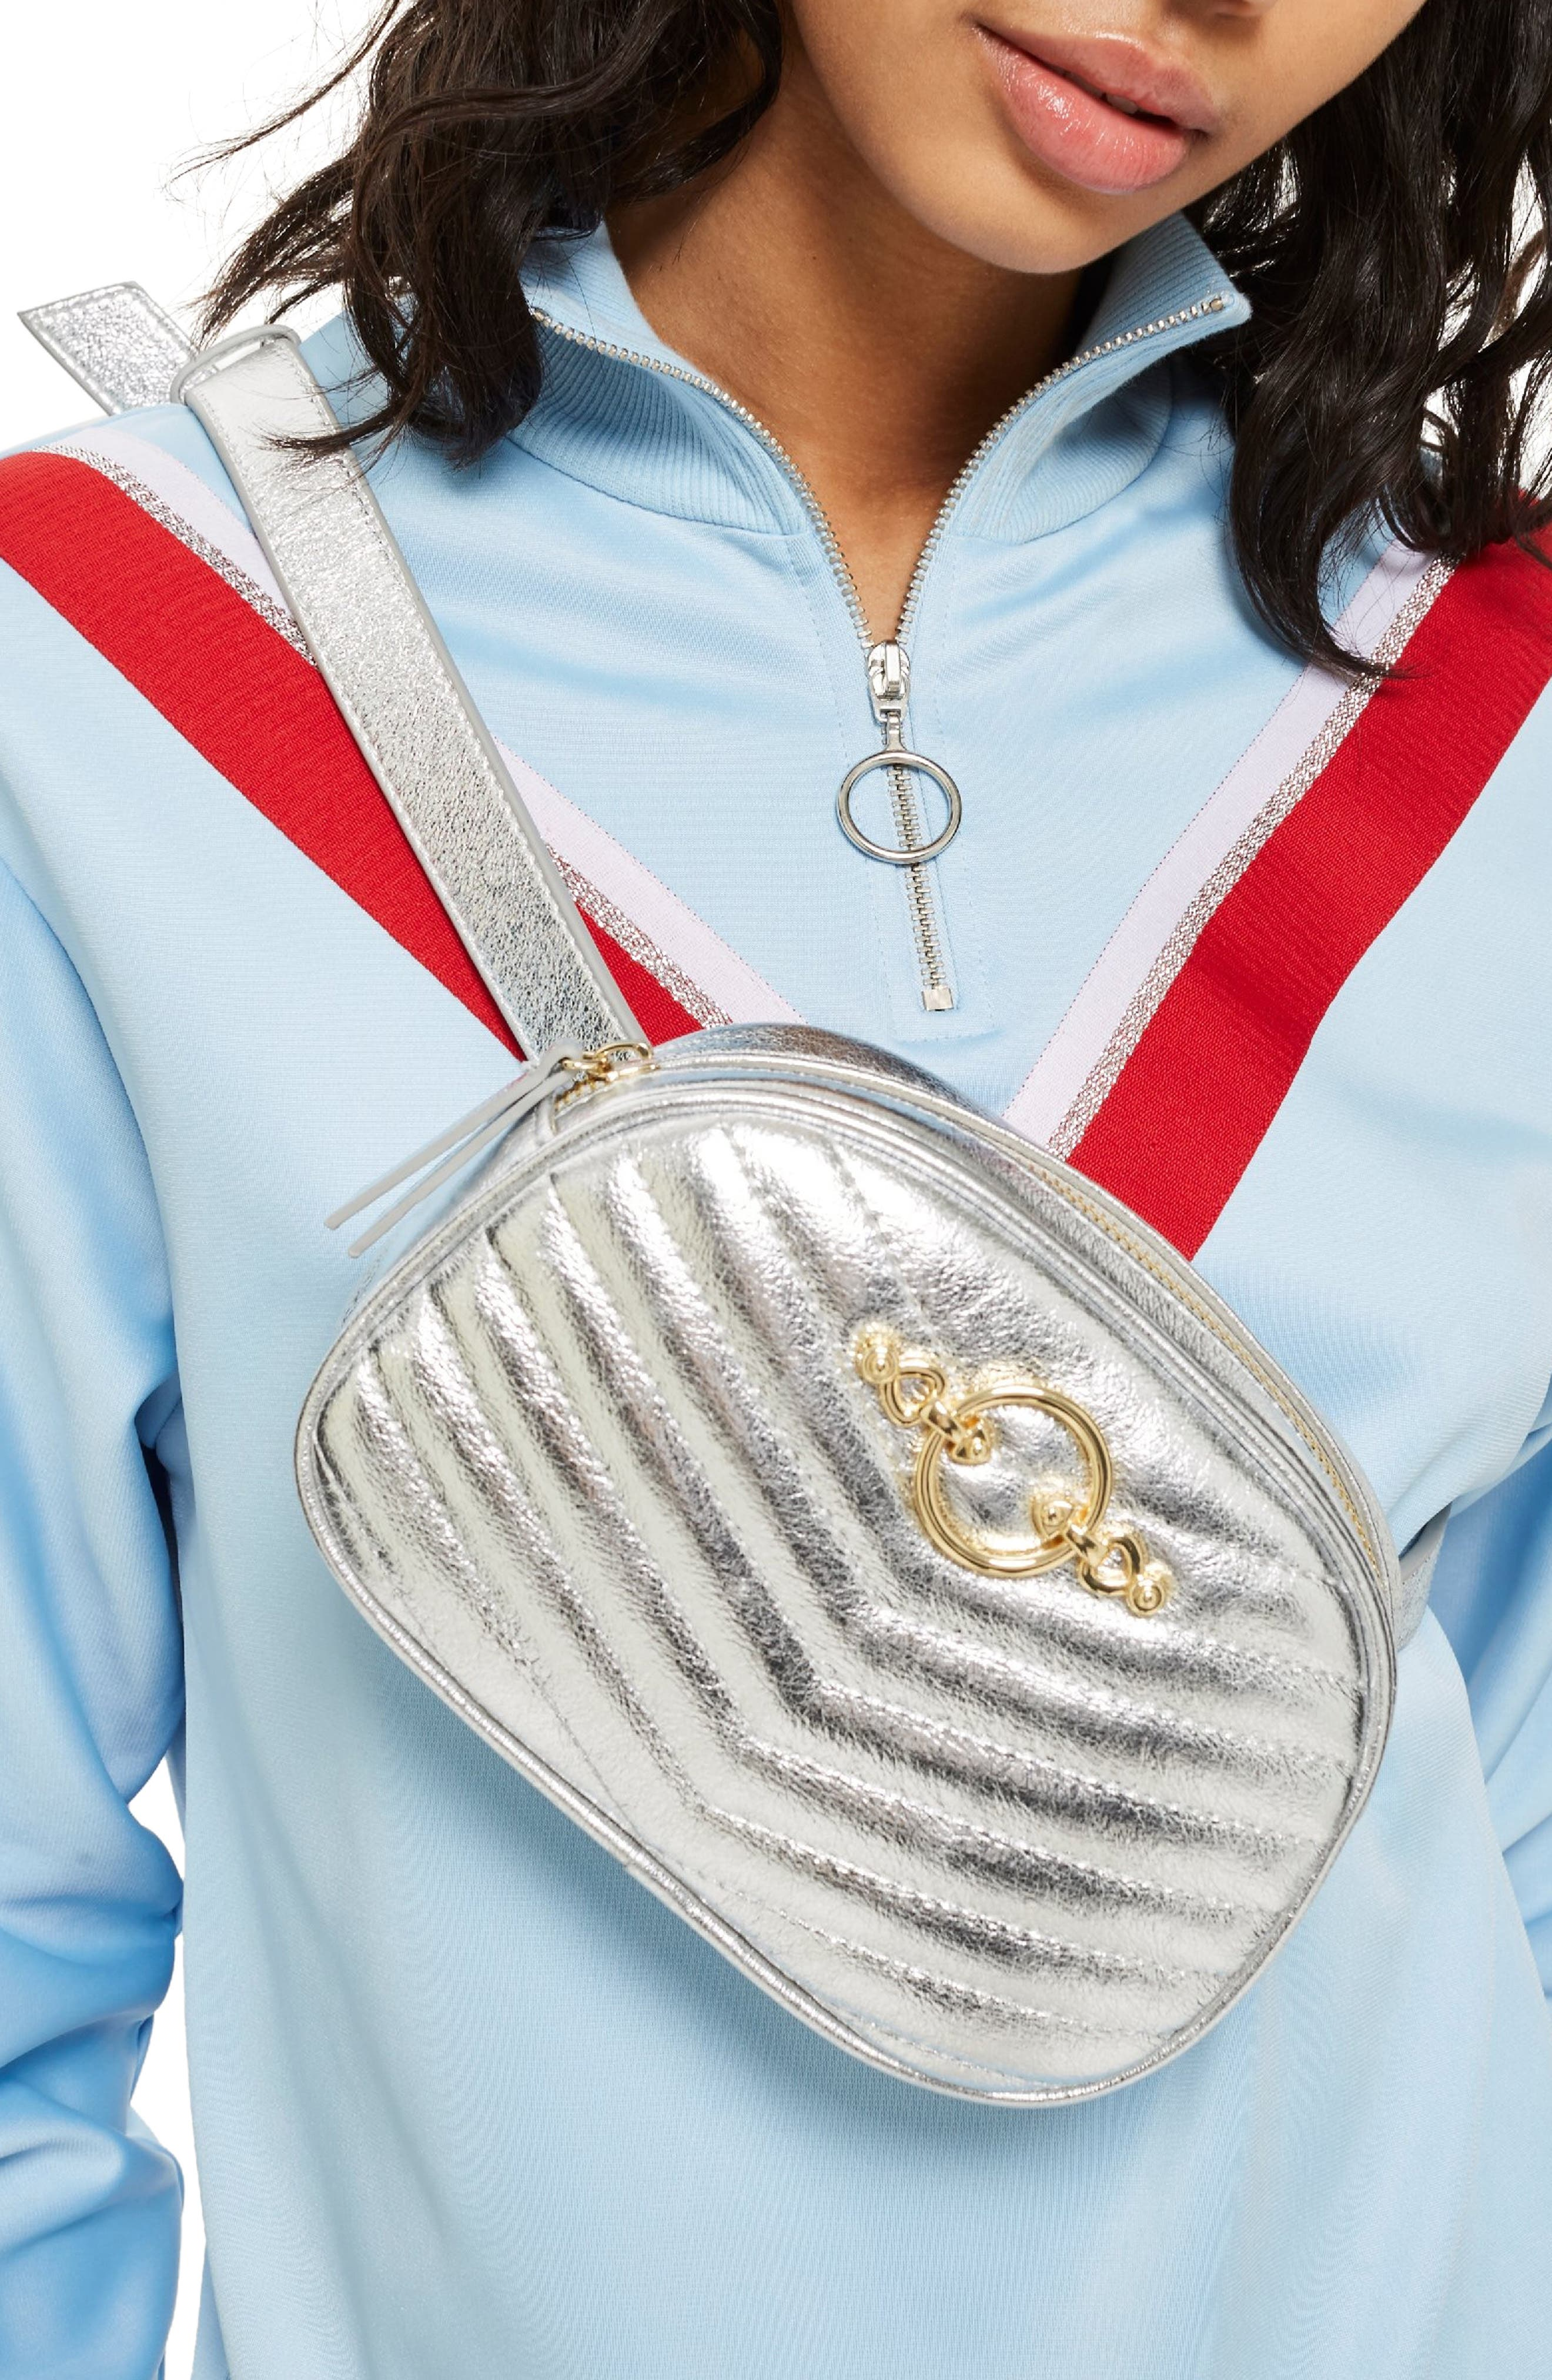 Queenie Quilted Bumbag,                             Alternate thumbnail 6, color,                             Silver Multi